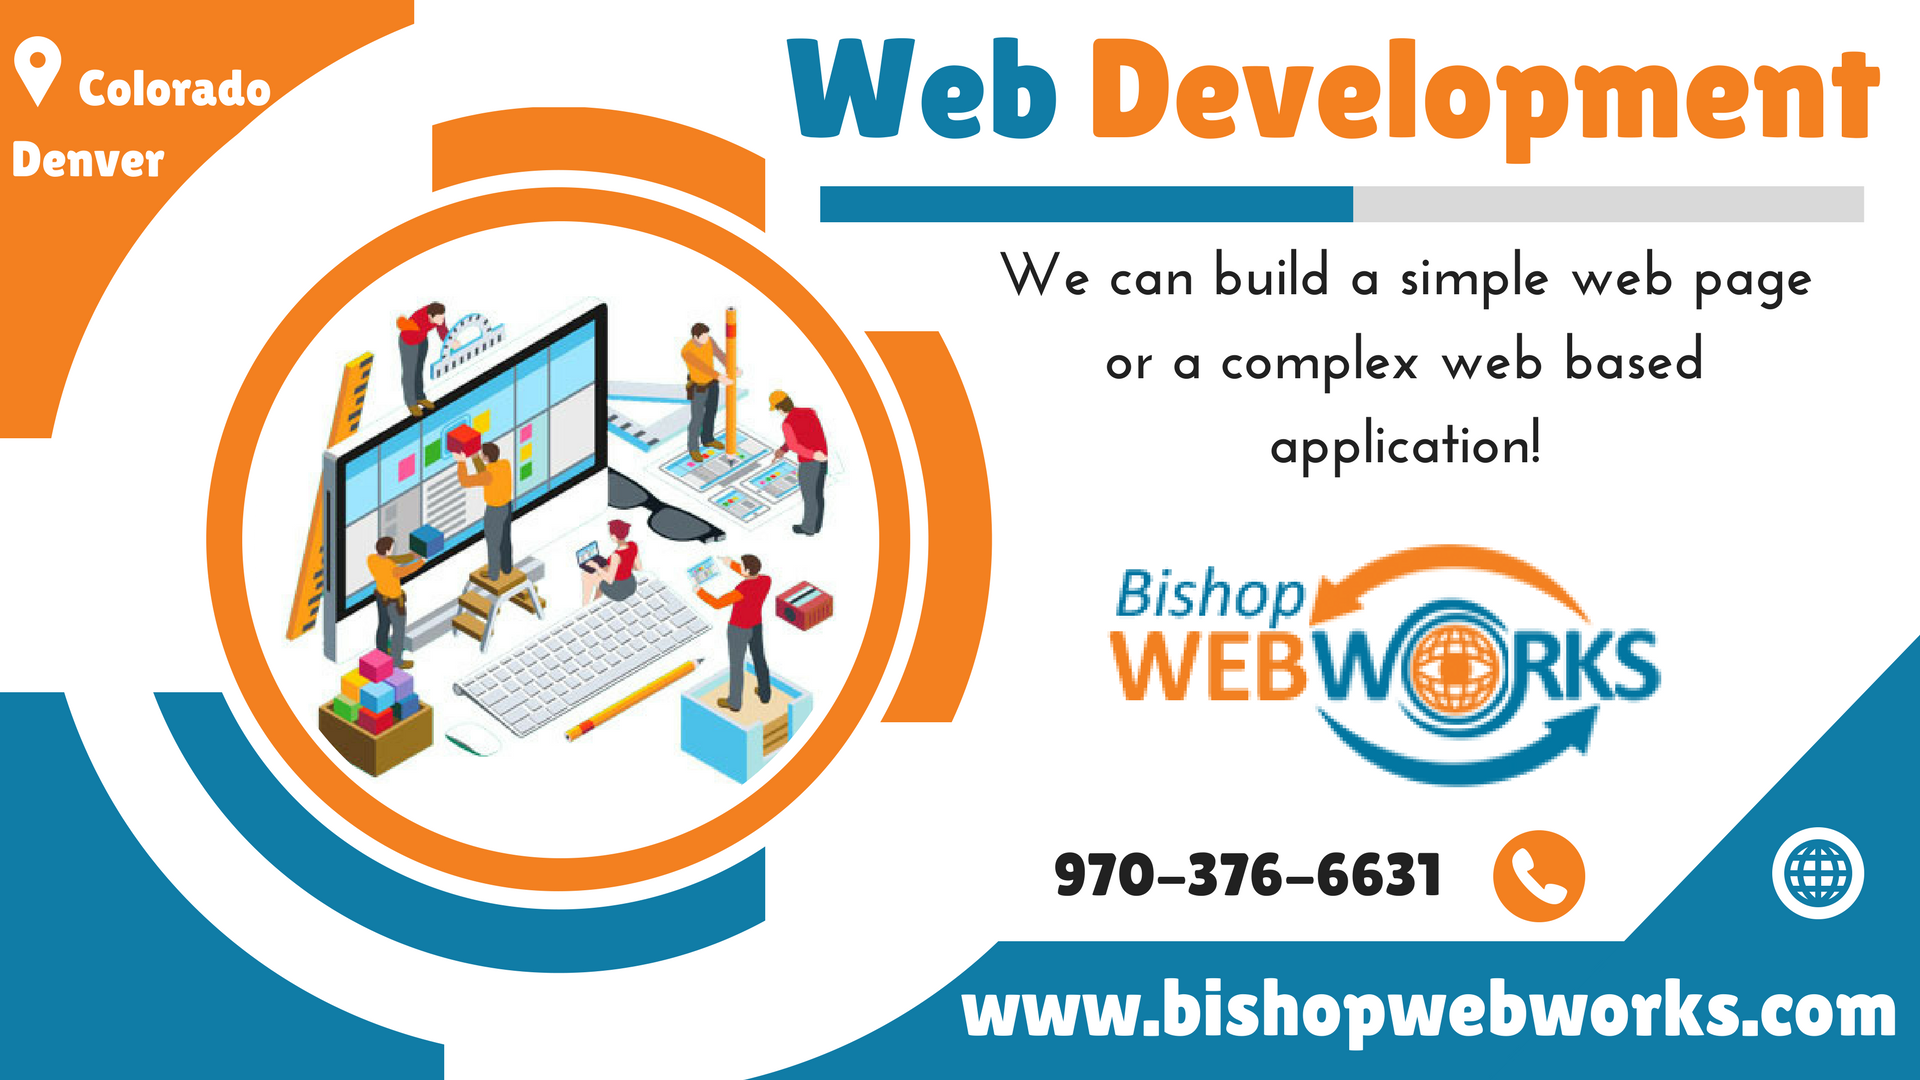 Custom Web Development Company In Denver Web Development Design Web Design Web Development